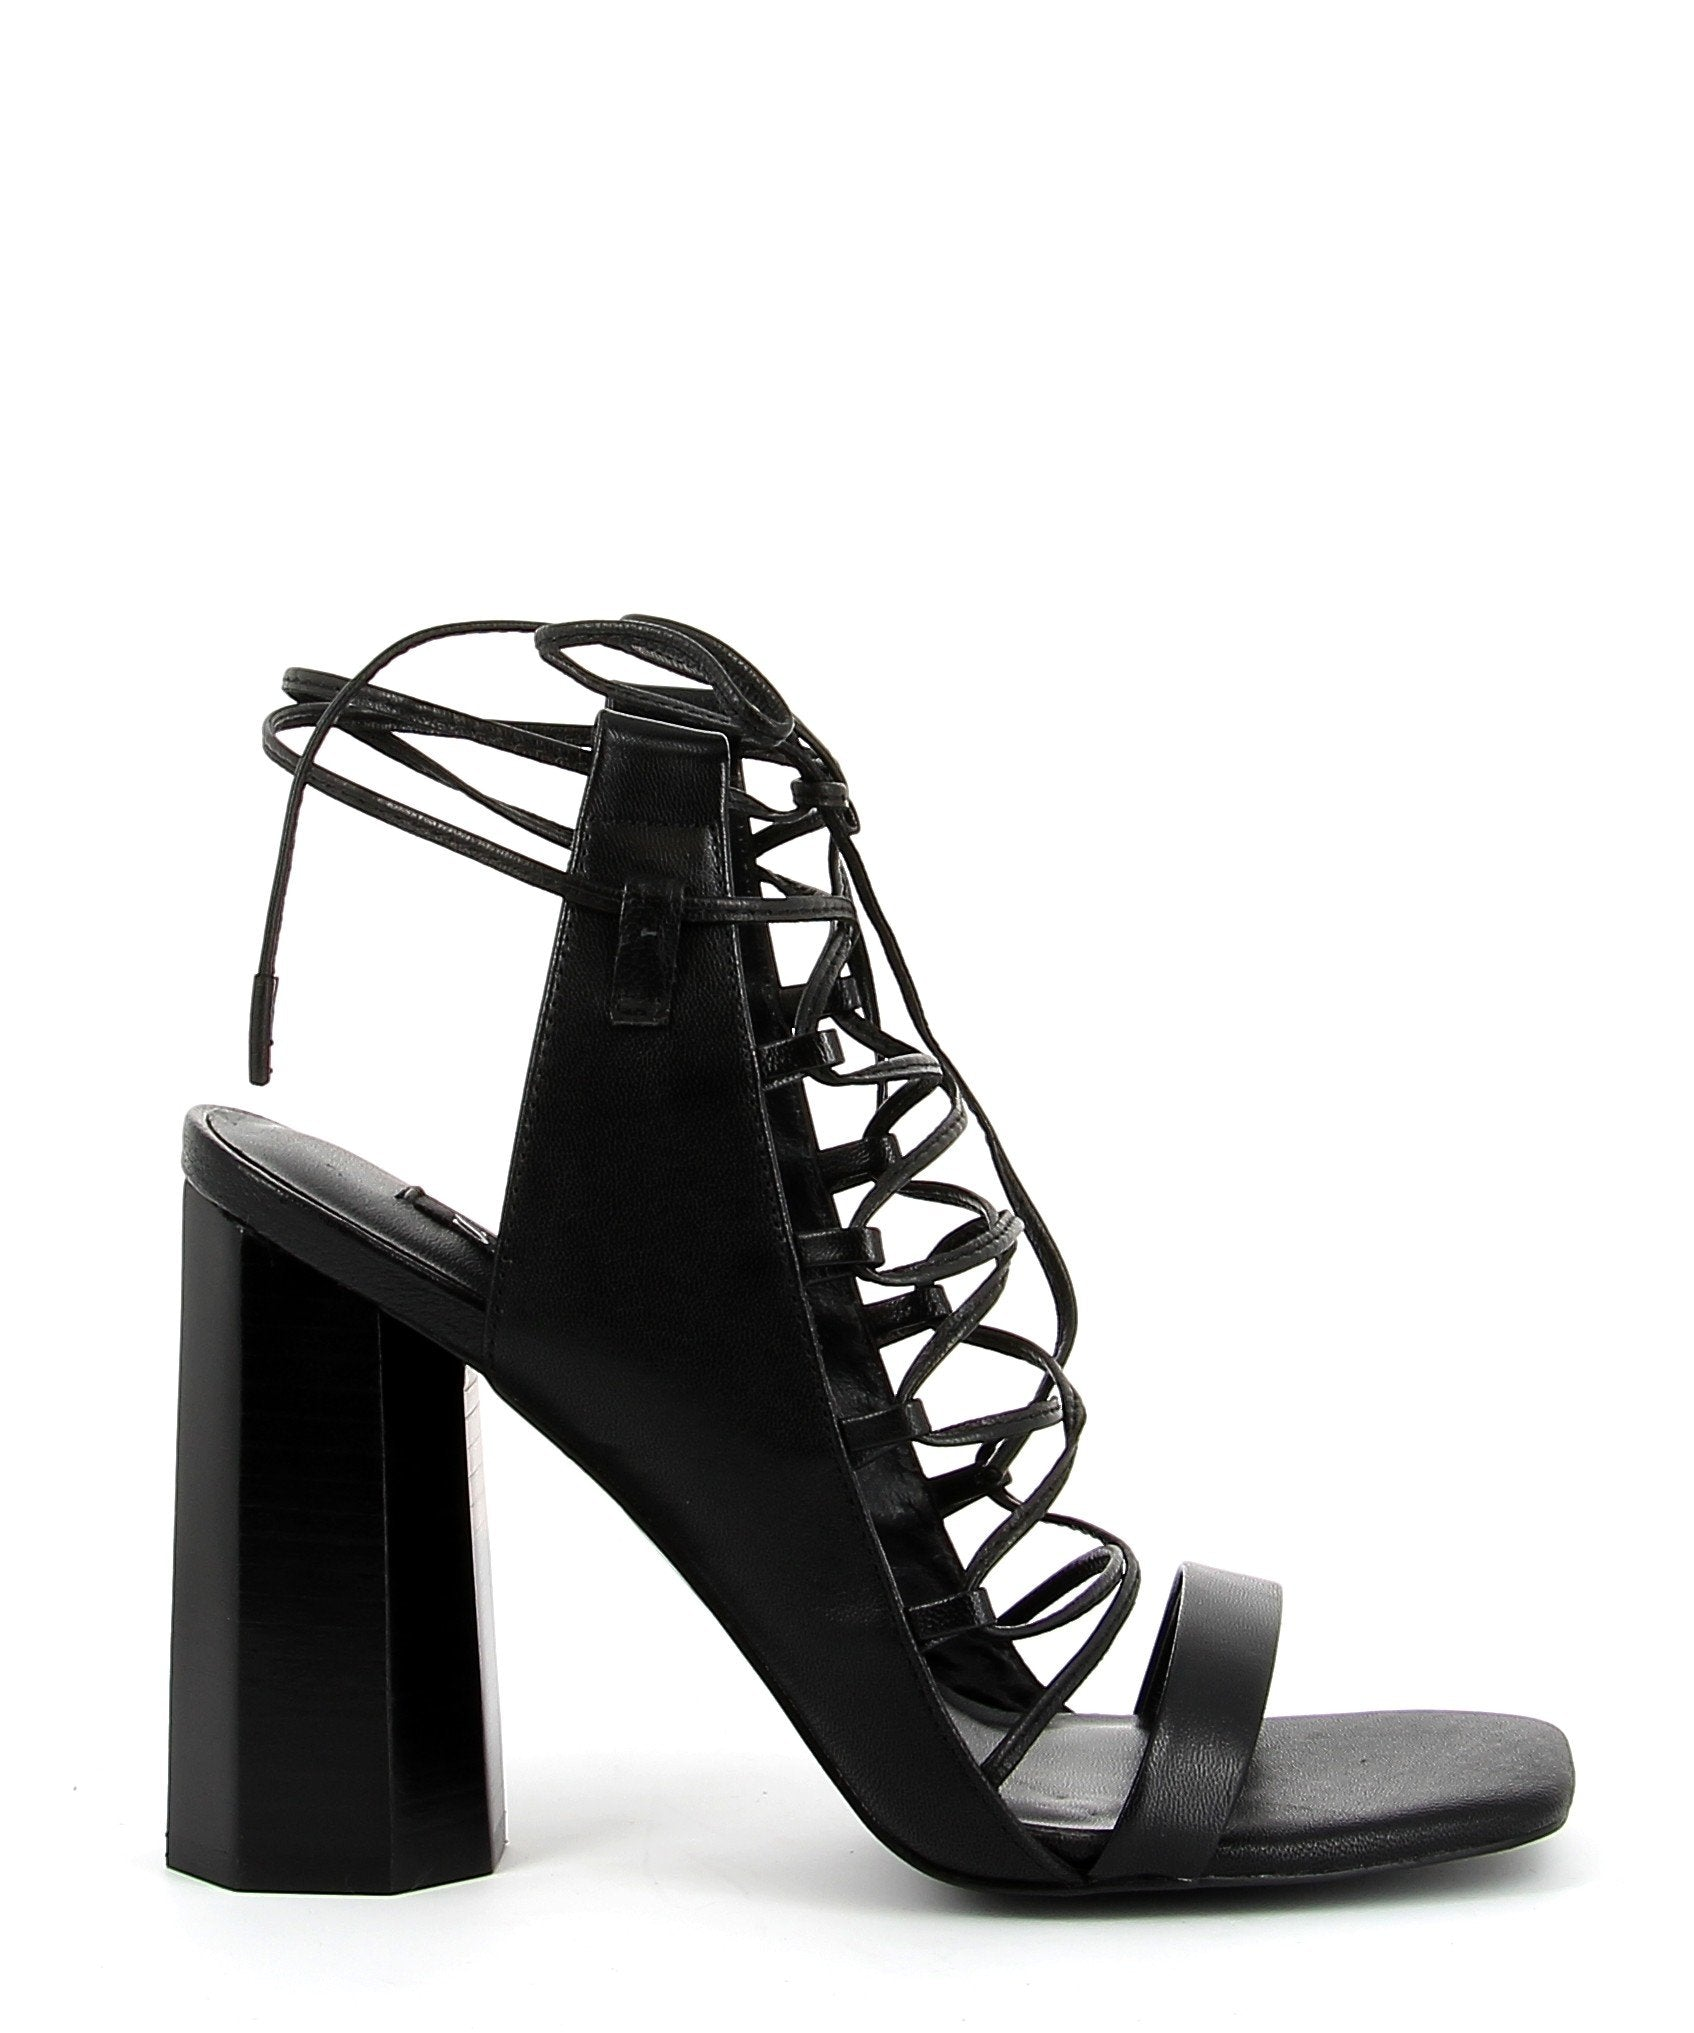 Strappy black leather sandals with tie-up detail, a high 11 cm architectural block heel and a soft square toe by Senso.